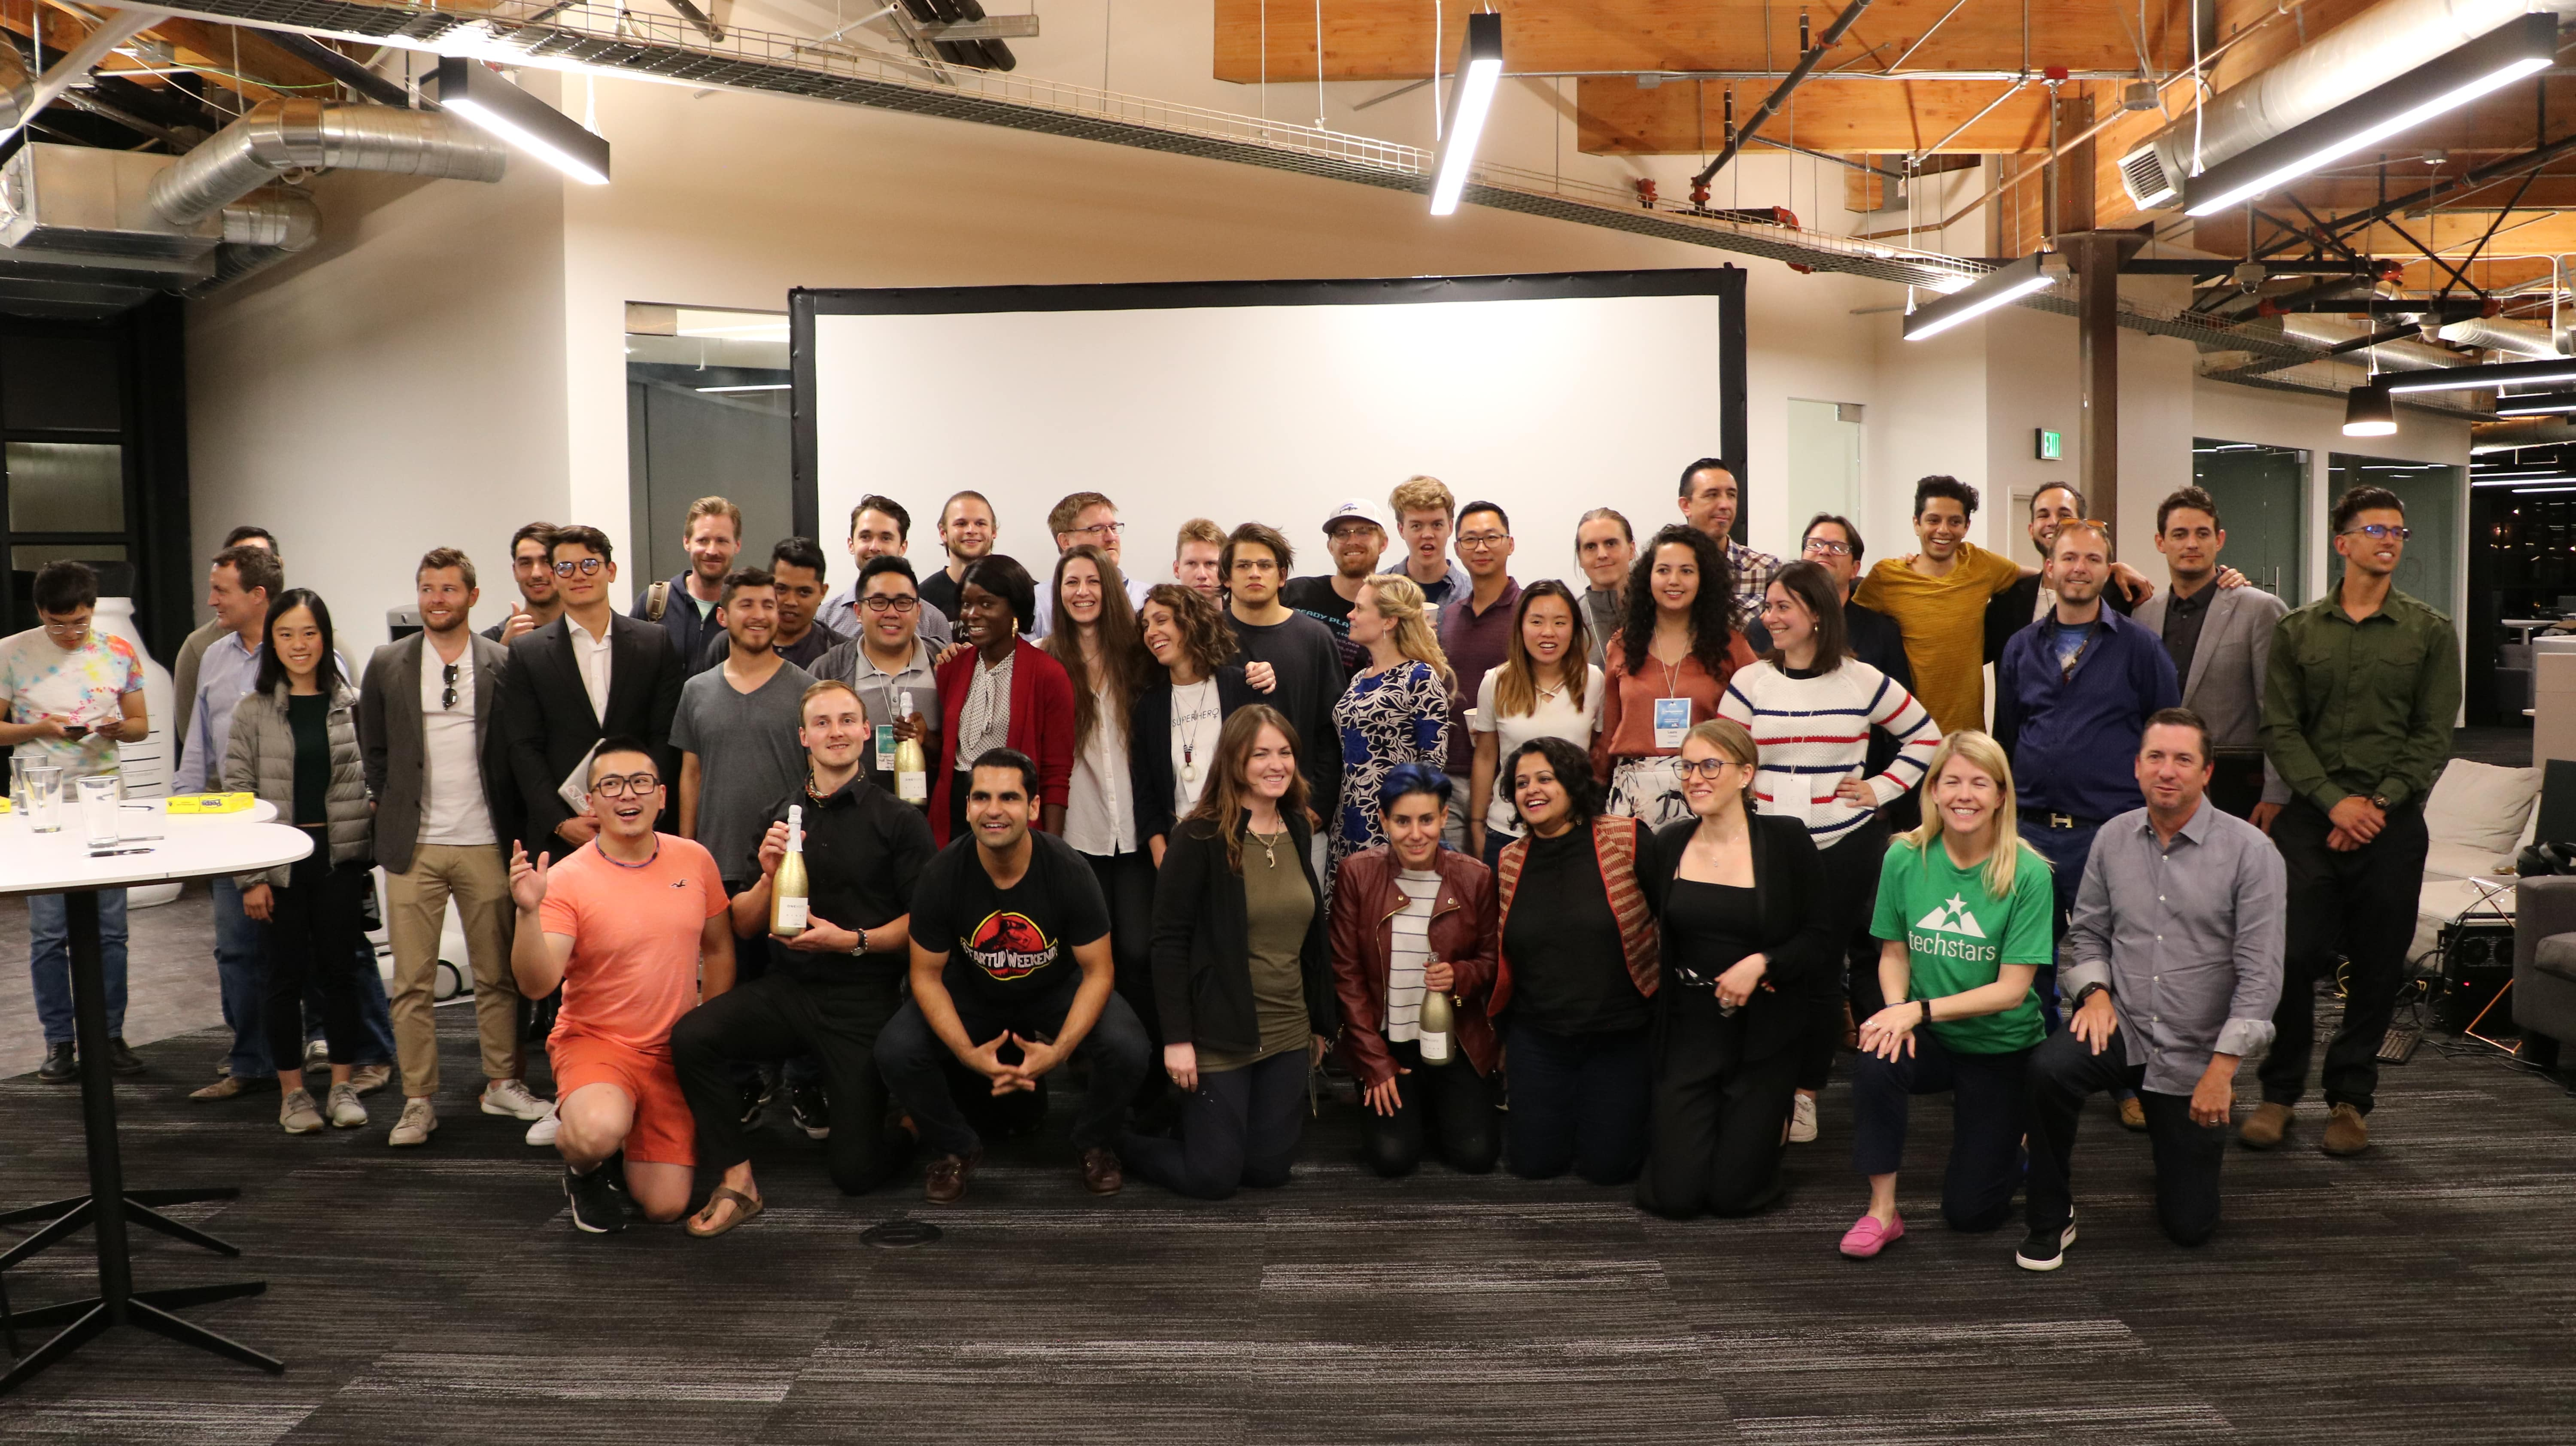 group photo from Techstars Startup Weekend